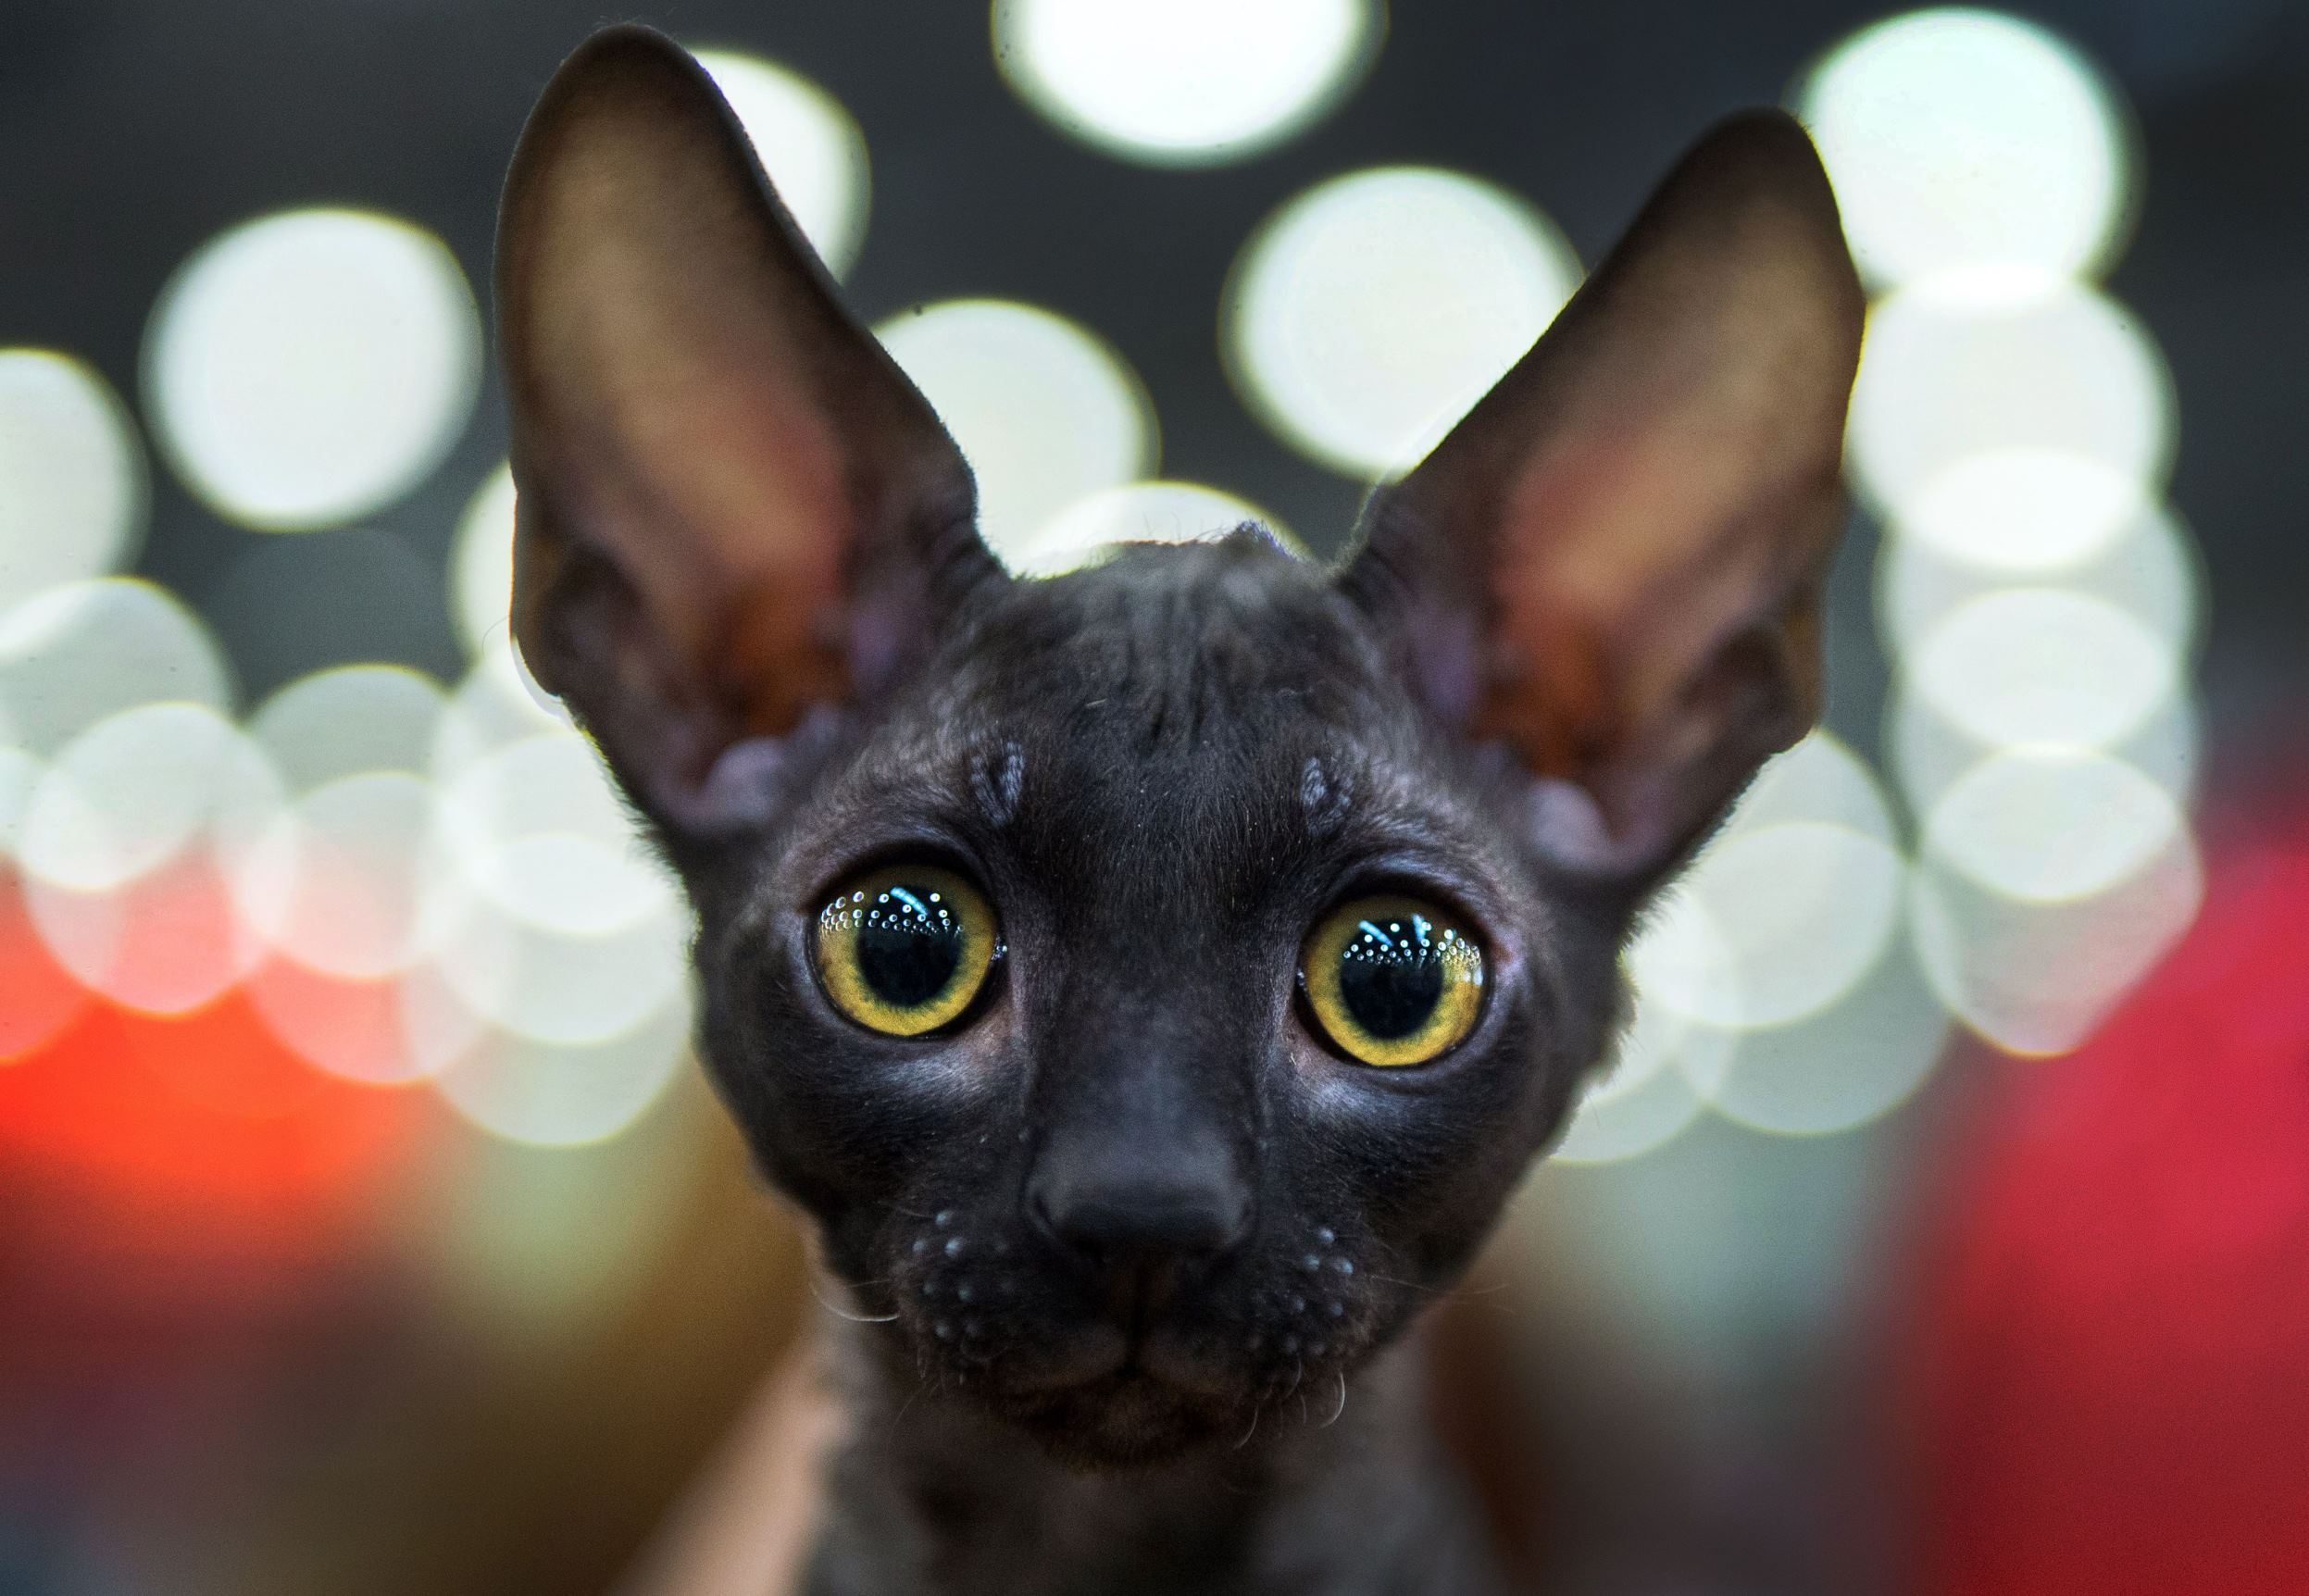 Слайд 36 из 67: TOPSHOT - A Cornish Rex breed cat attends the Catsburg 2016 International Cats show in Moscow on March 5, 2016. / AFP / DMITRY SEREBRYAKOV        (Photo credit should read DMITRY SEREBRYAKOV/AFP/Getty Images)